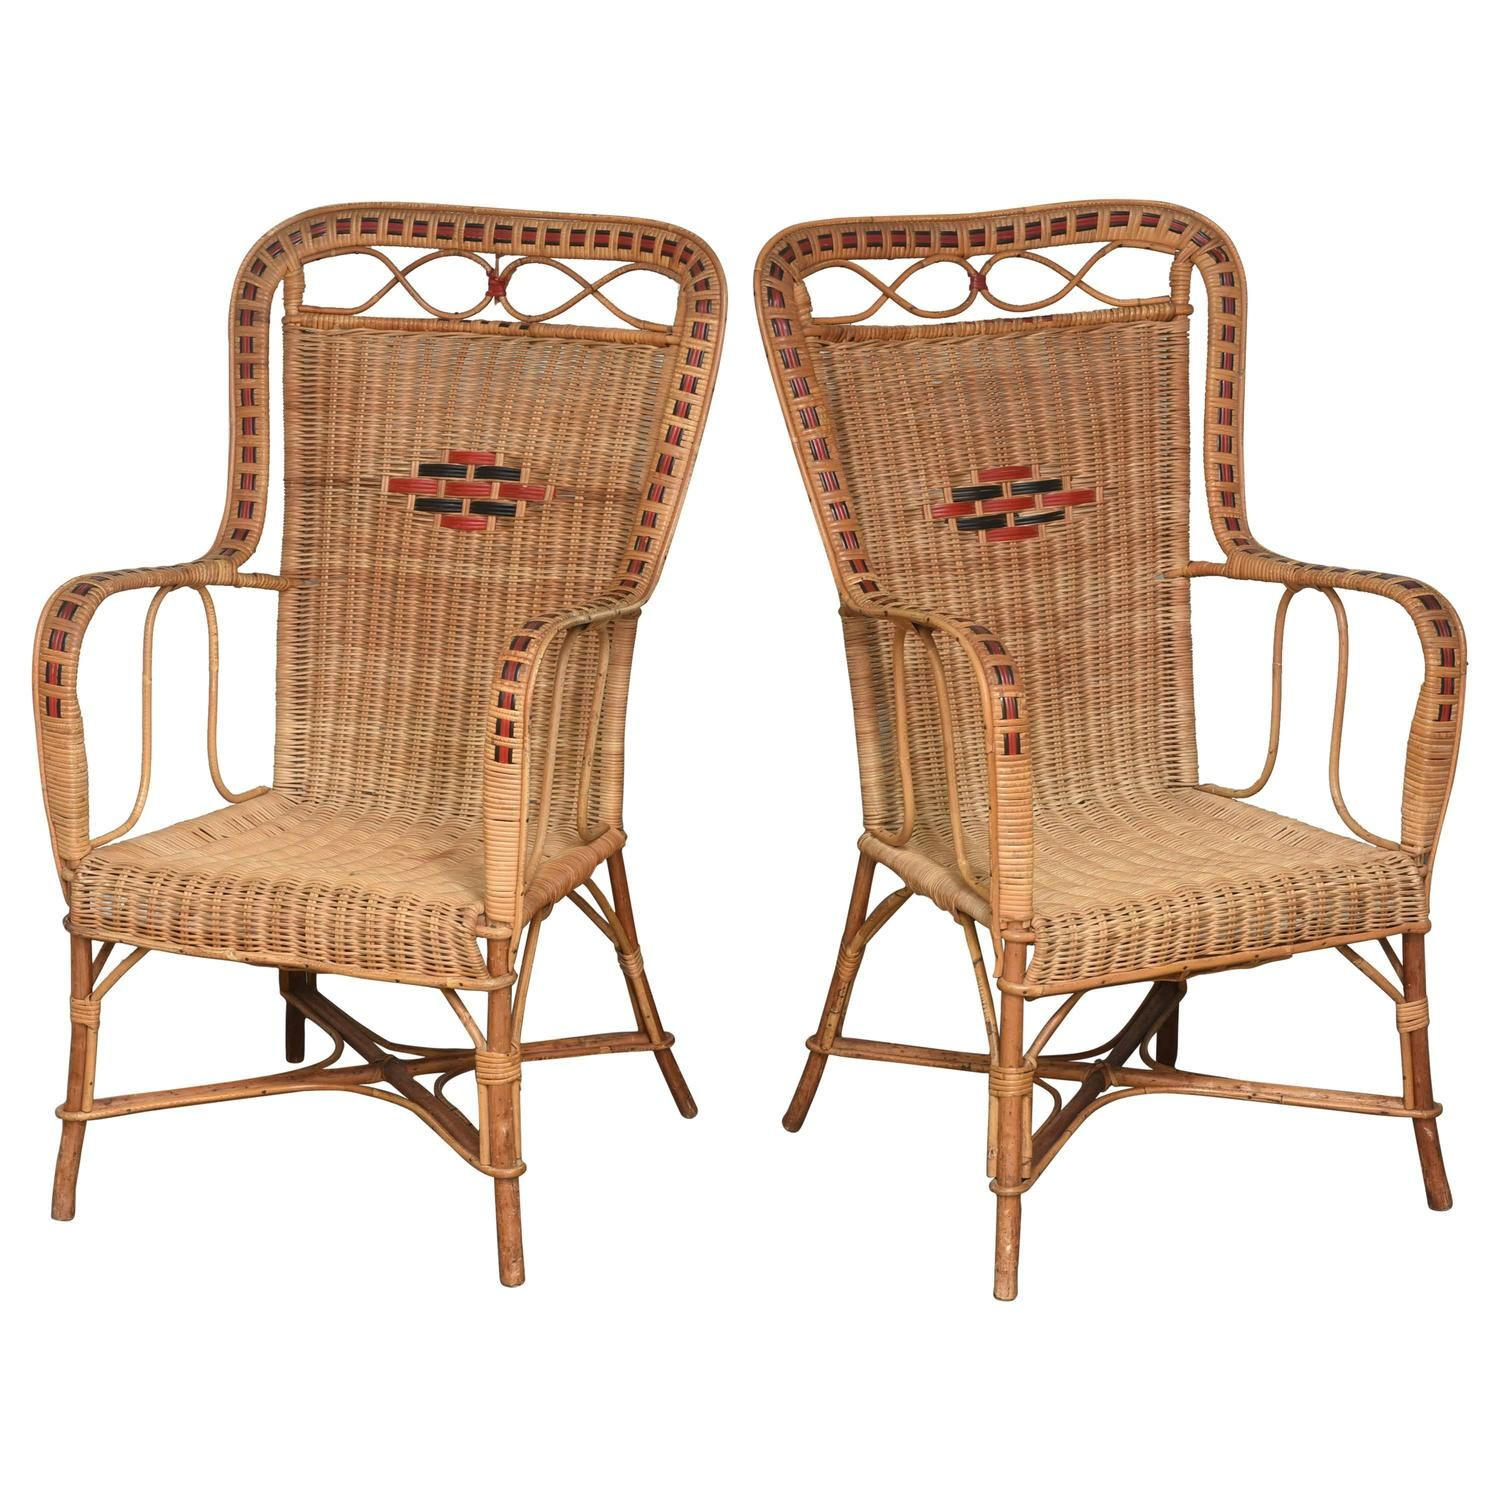 Pair of French Vintage Rattan Armchairs | From a unique ...